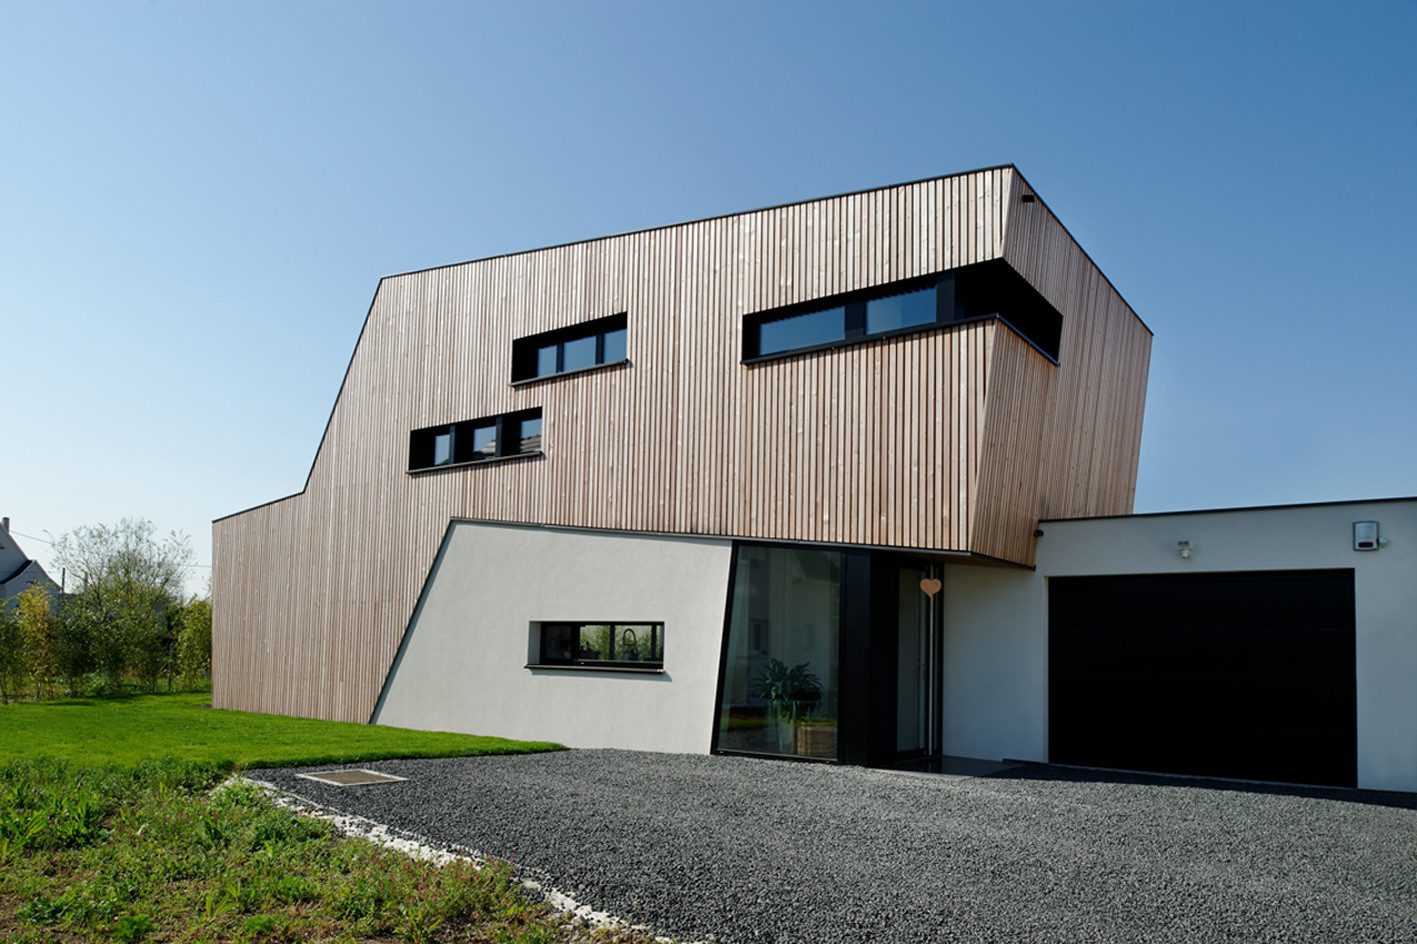 House in Colmar / ideaa architectures, © Alain-Marc Oberlé